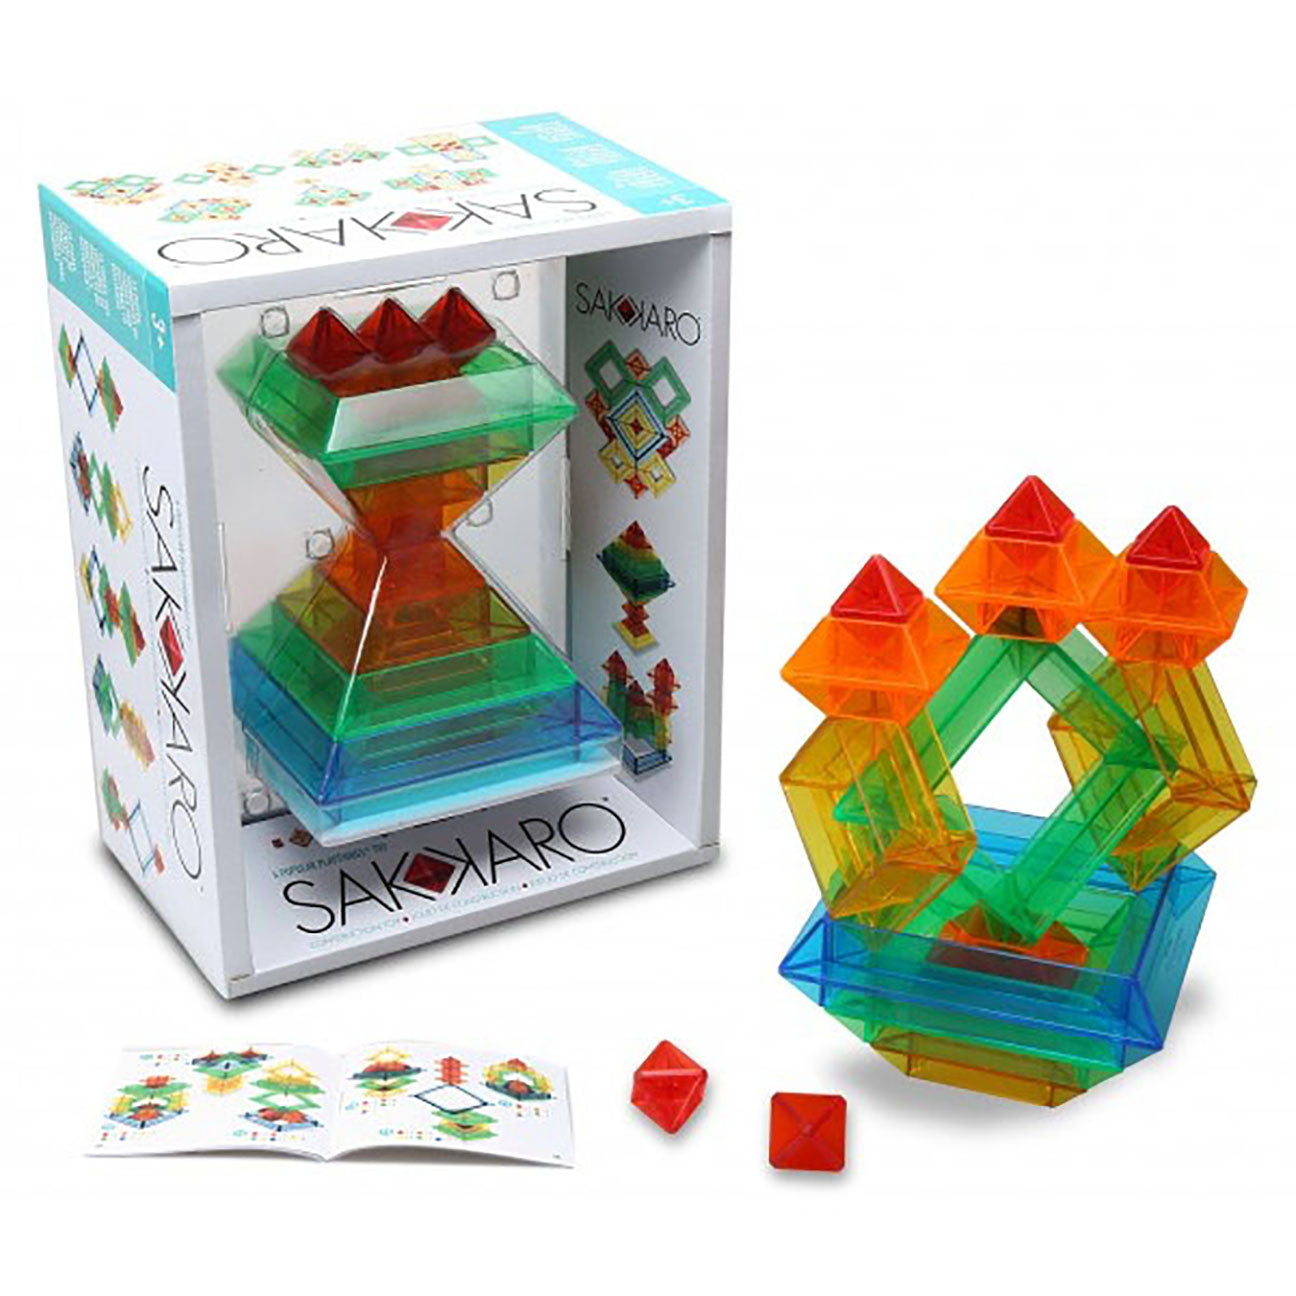 Sakkaro Building Stacking Toy with Over 100 Patterns